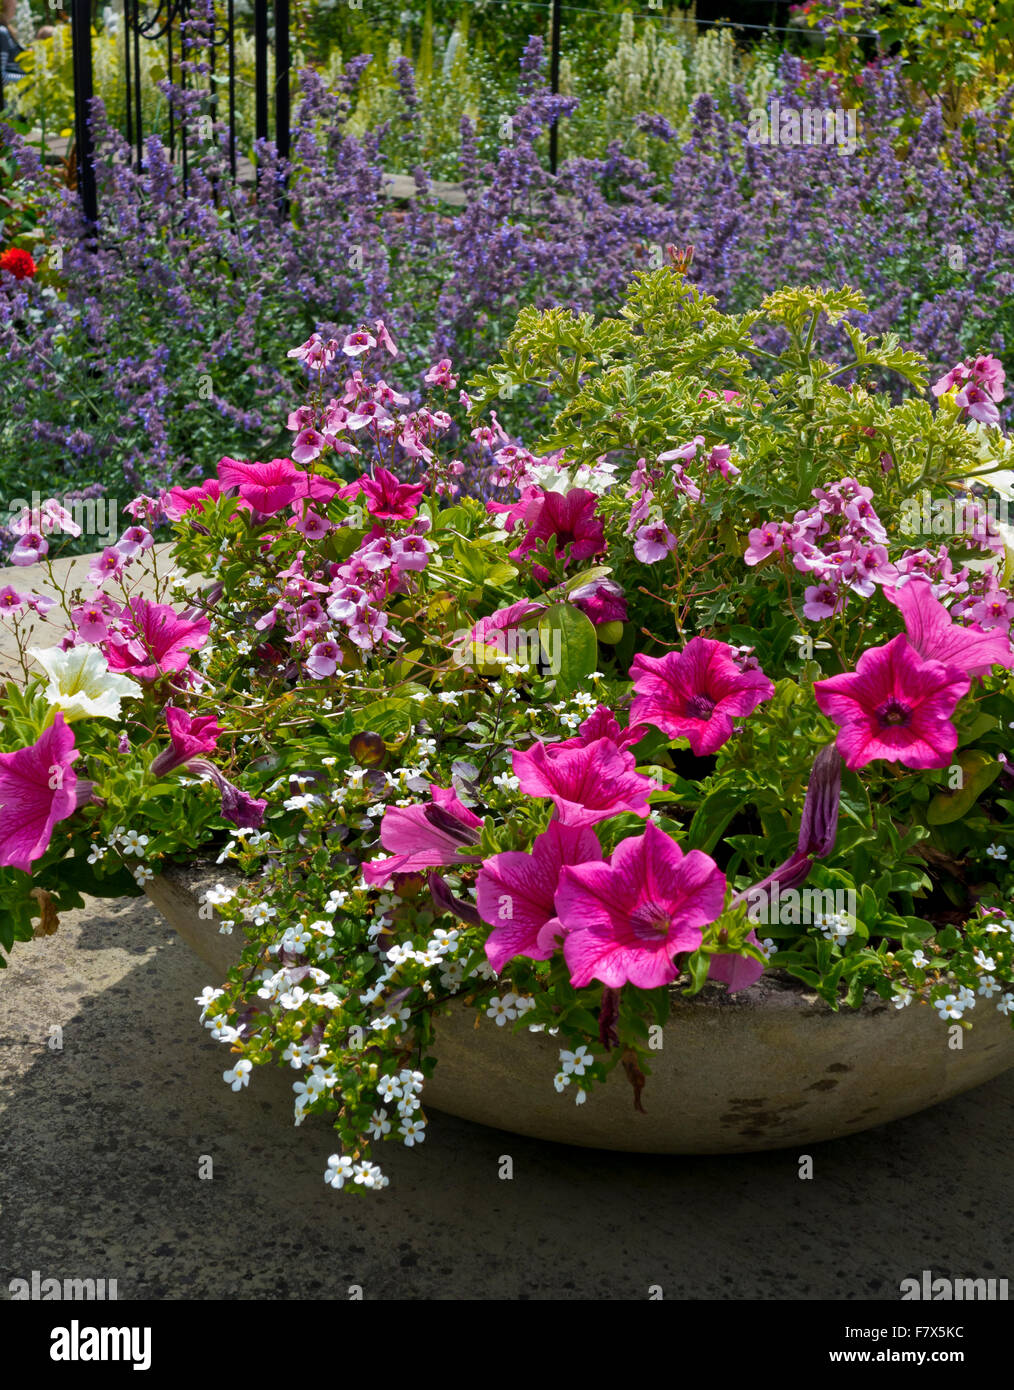 Petunias And Other Summer Flowers Growing In A Stone Urn Stock Photo